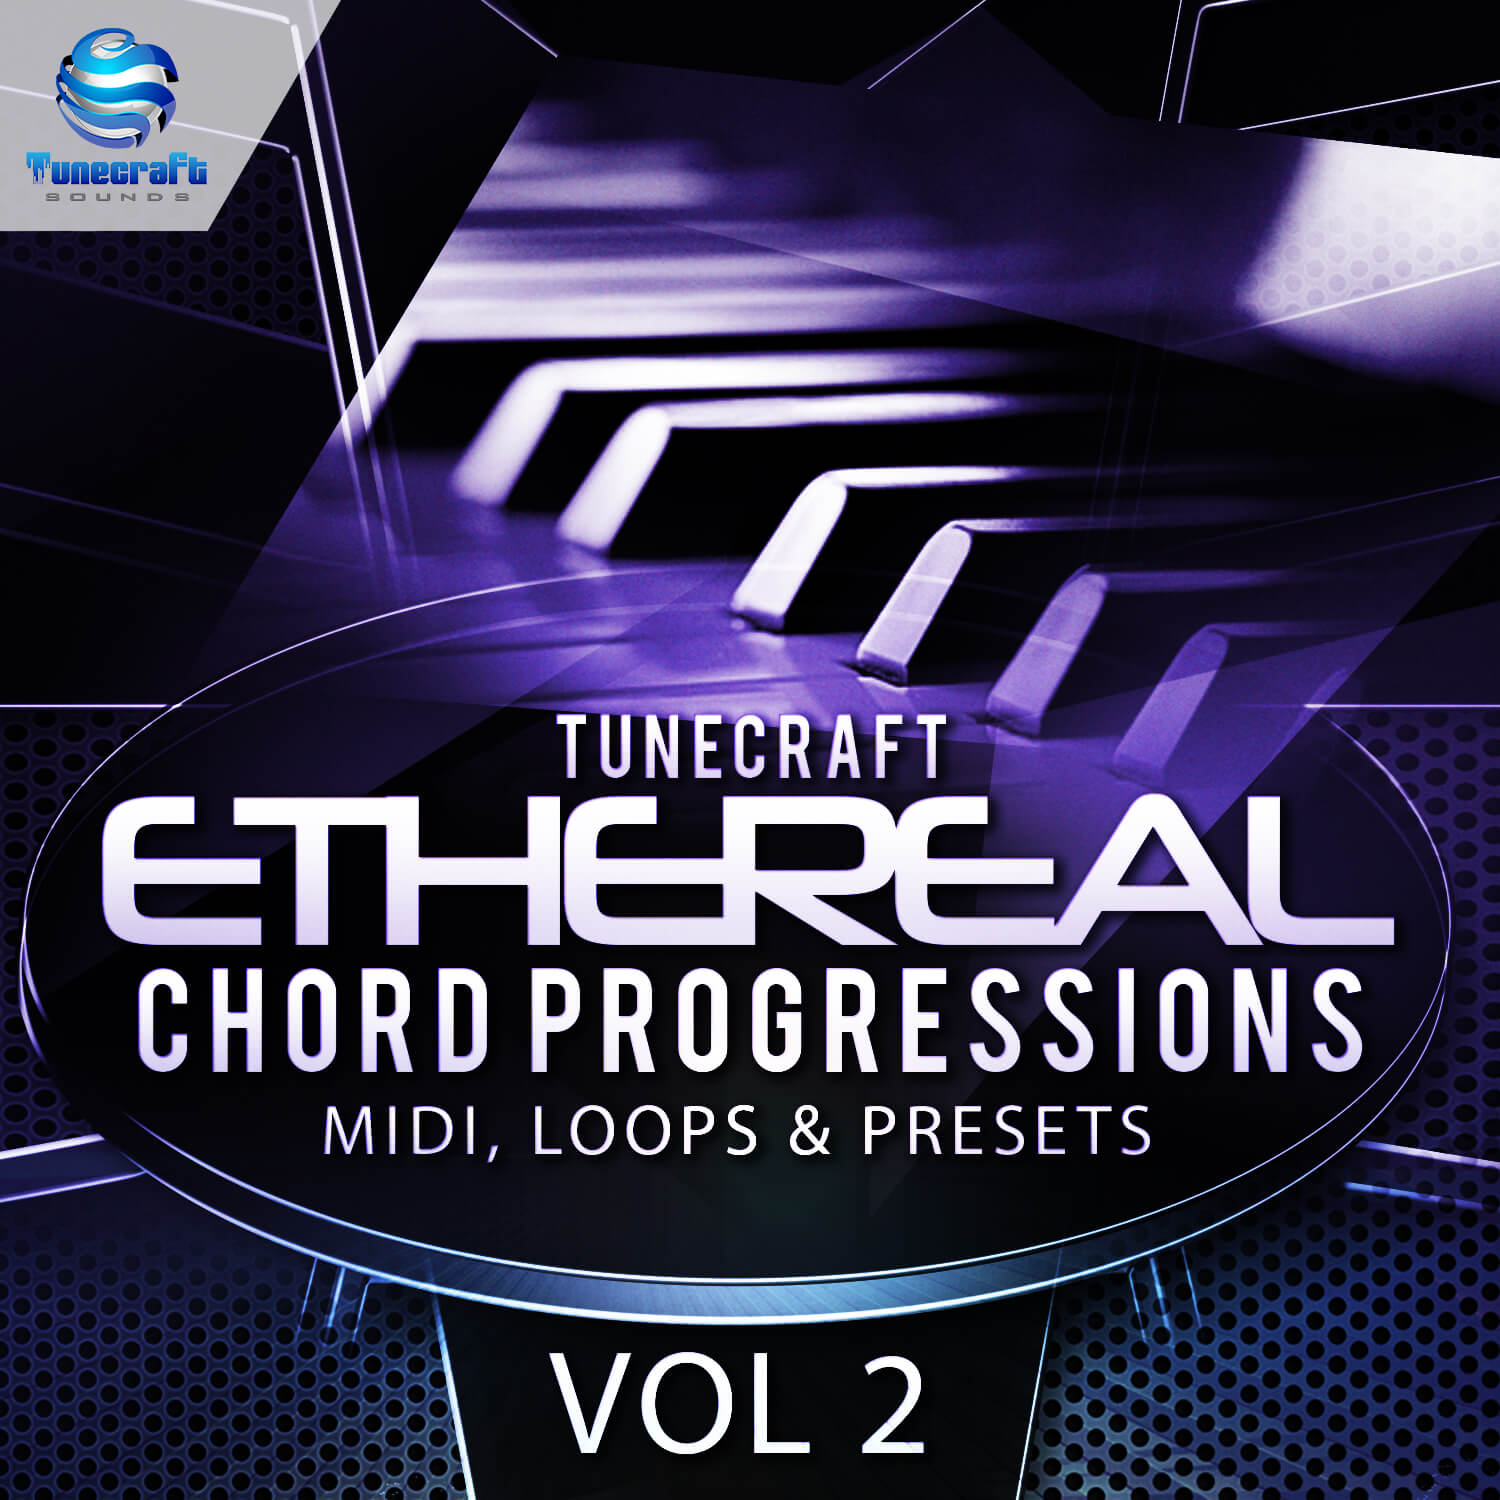 Tunecraft Ethereal Chord Progressions Vol.2